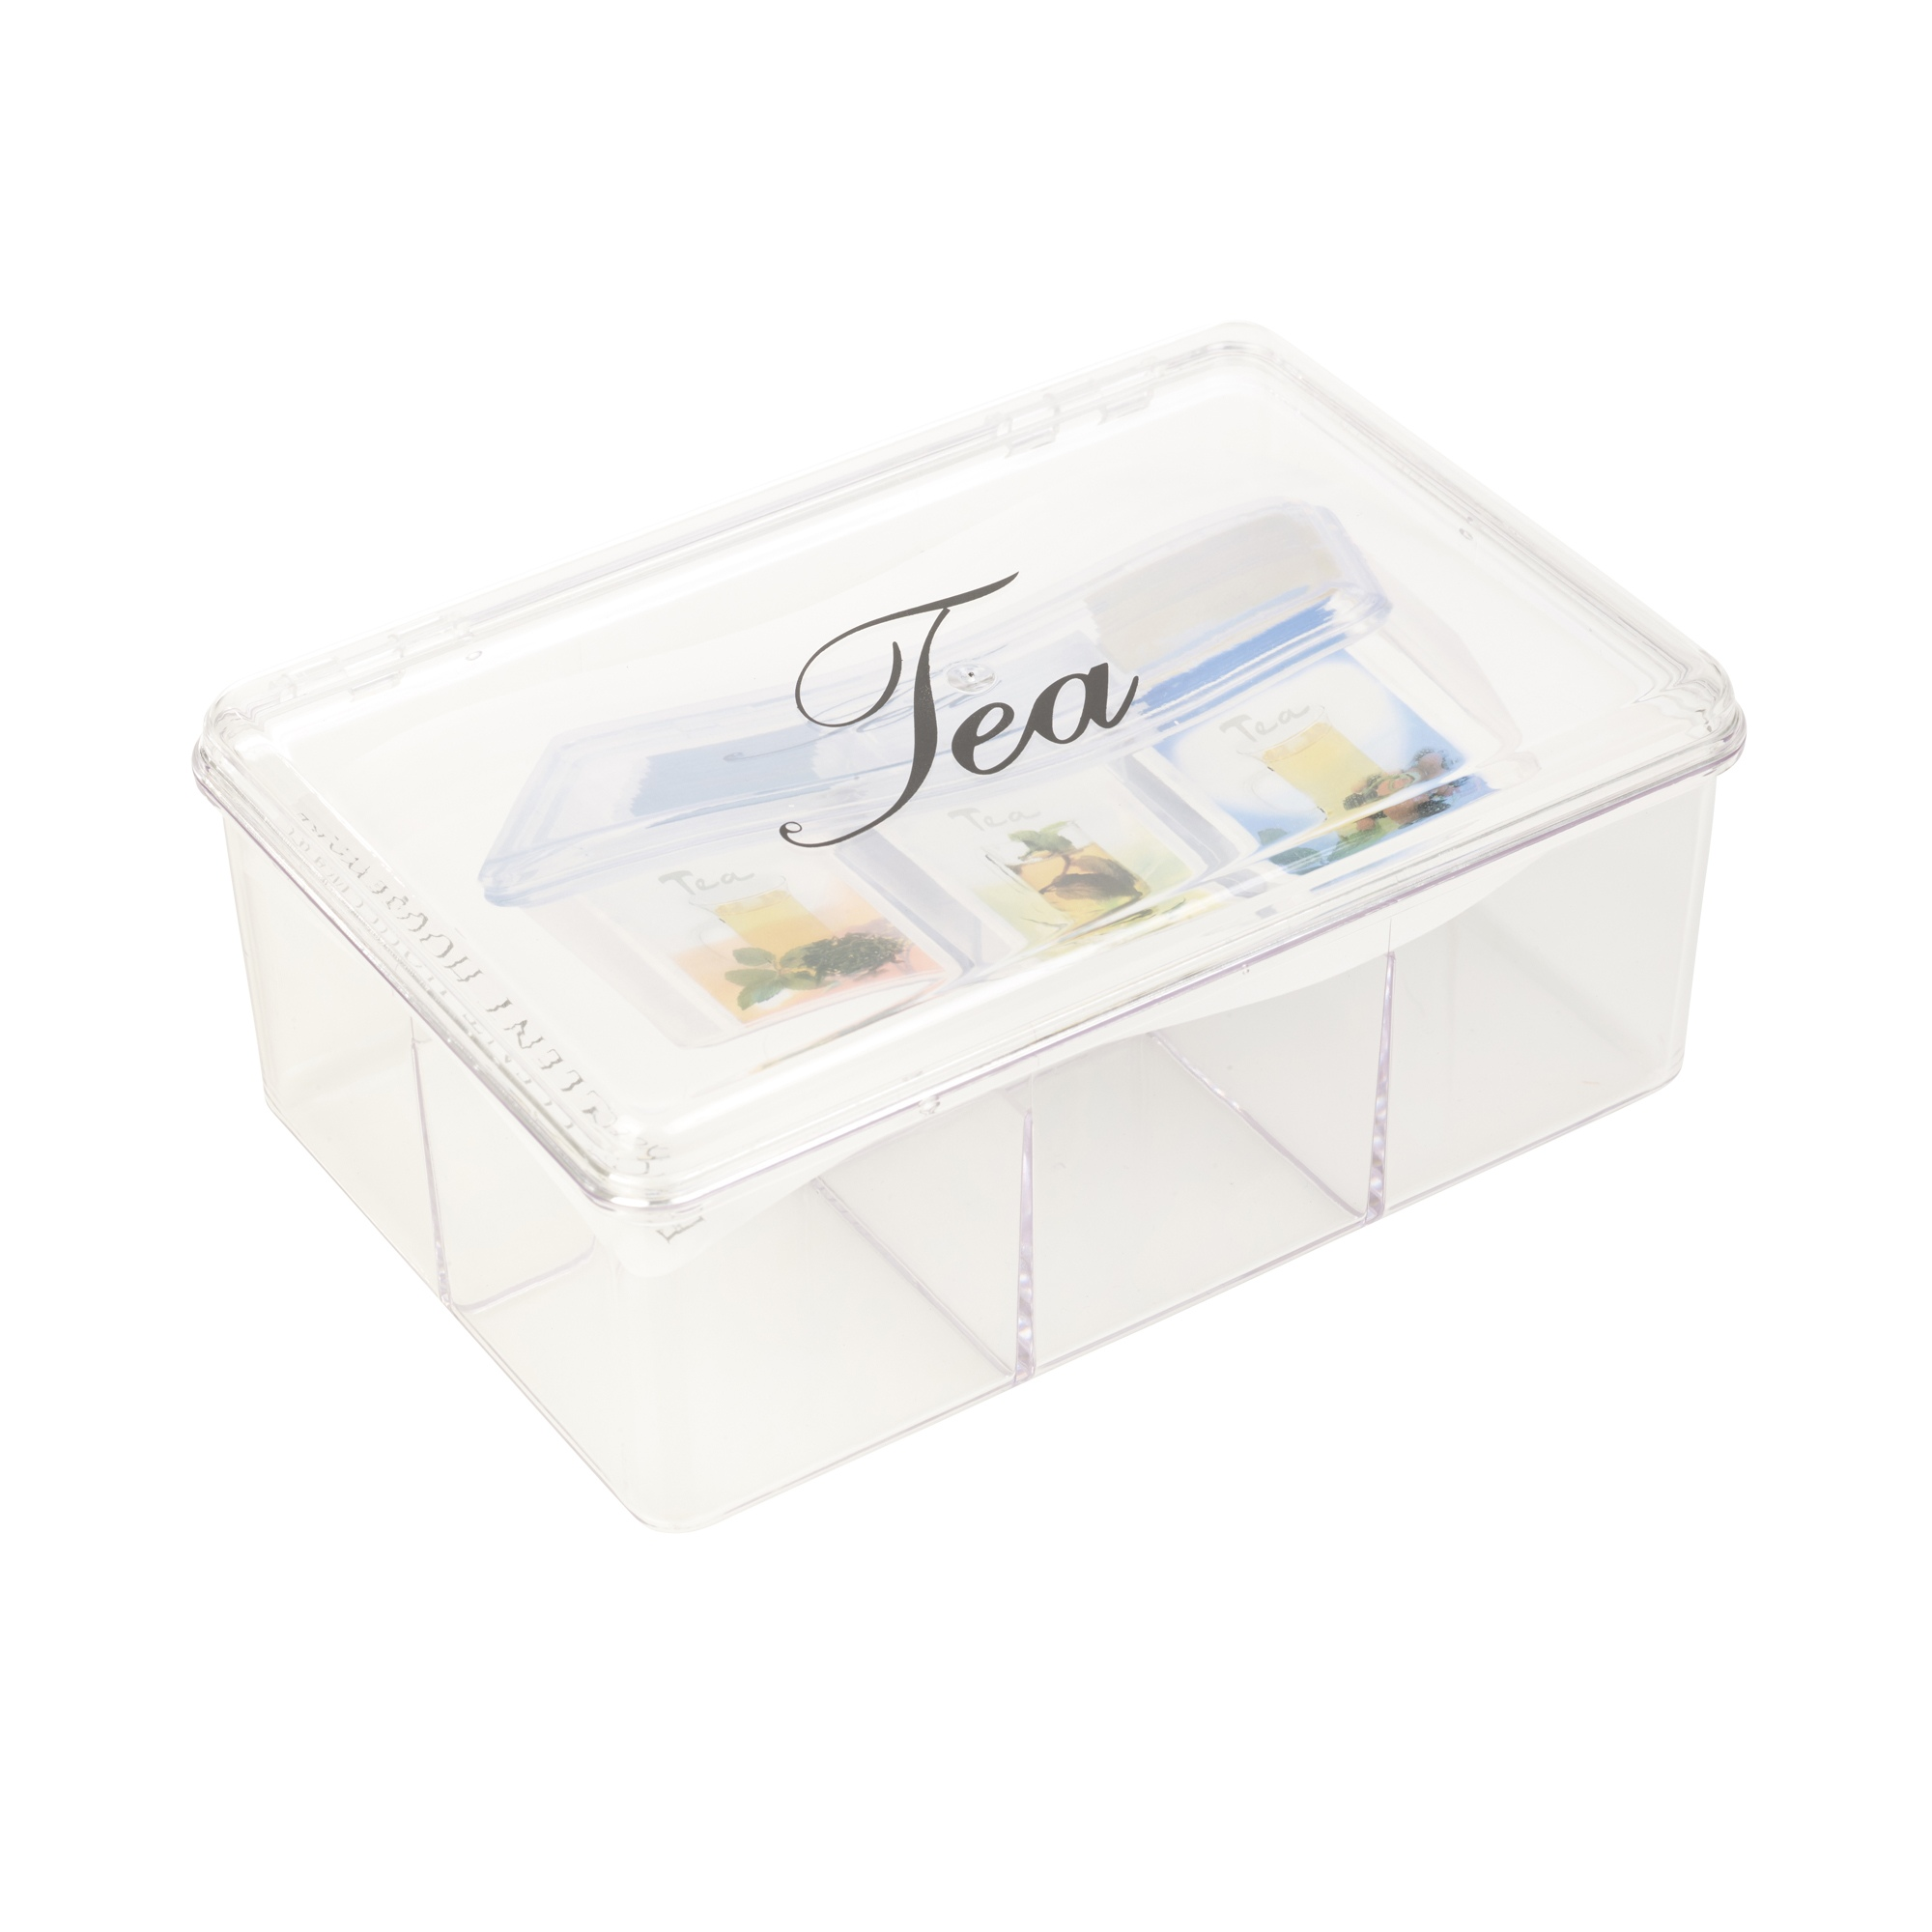 Acrylic Clear Tea Box 6 Sections With Lid Compartments